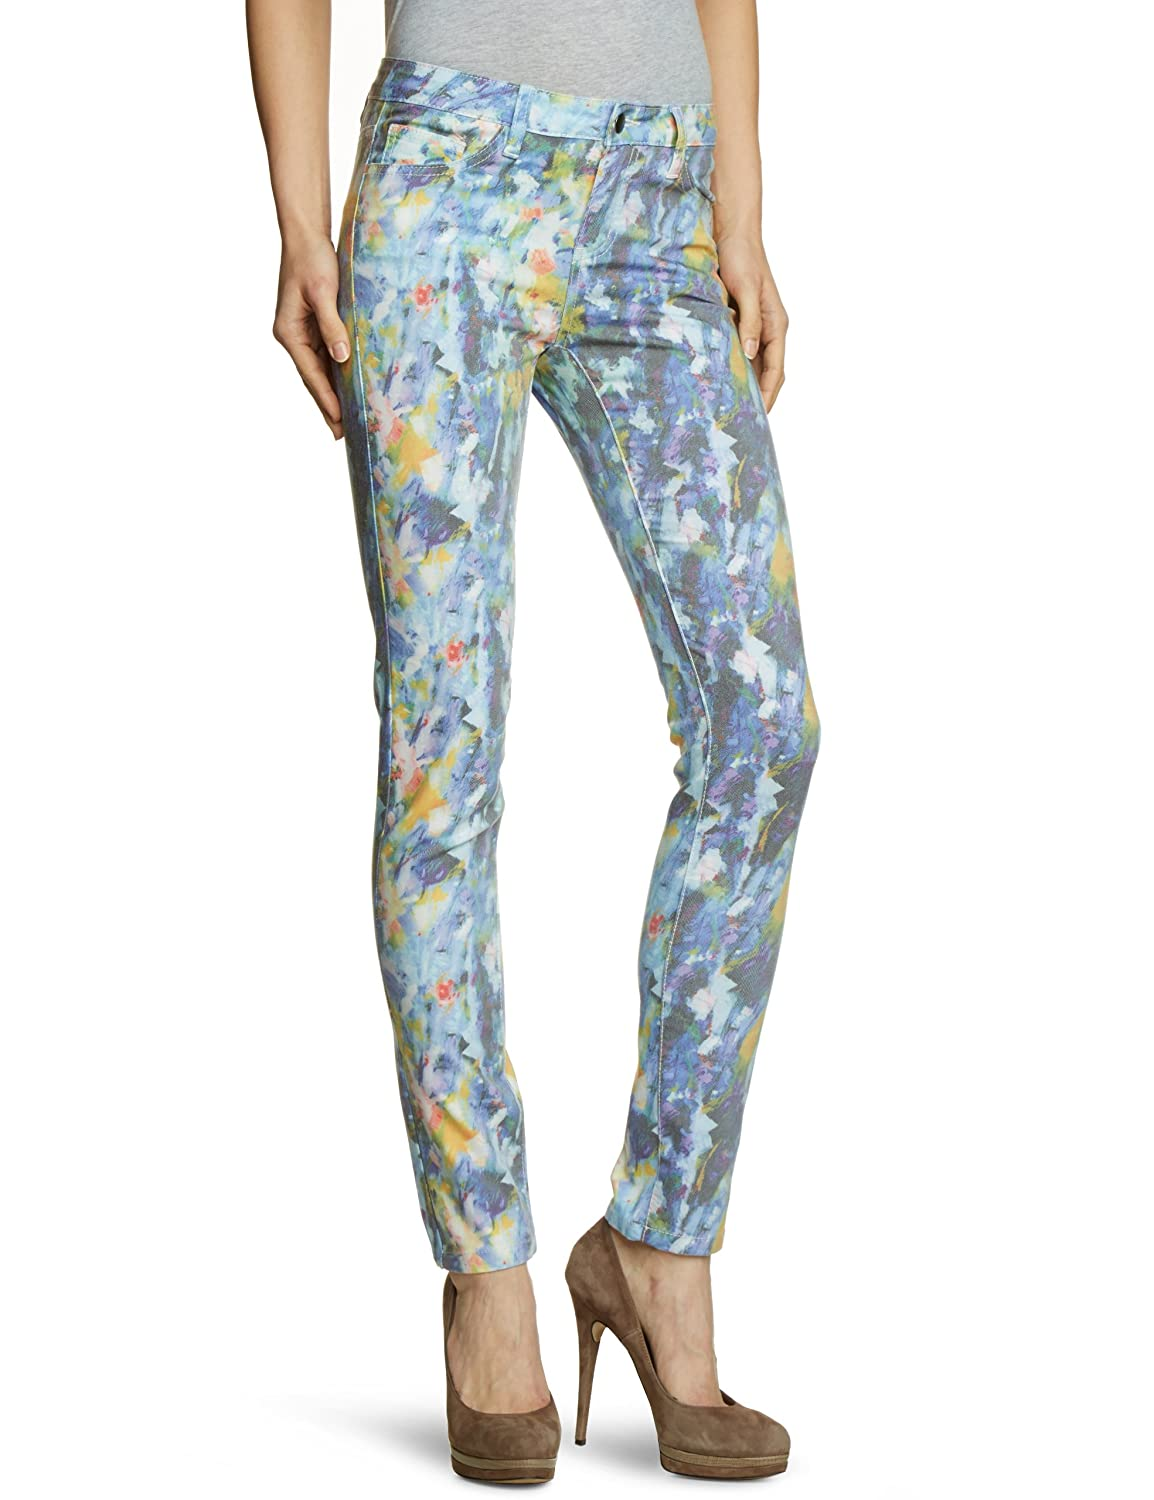 PIECES Women's Leggings / 17046945 FUNKY FLOFY DELUX LEGGING / LIGHT BLUE, All over print